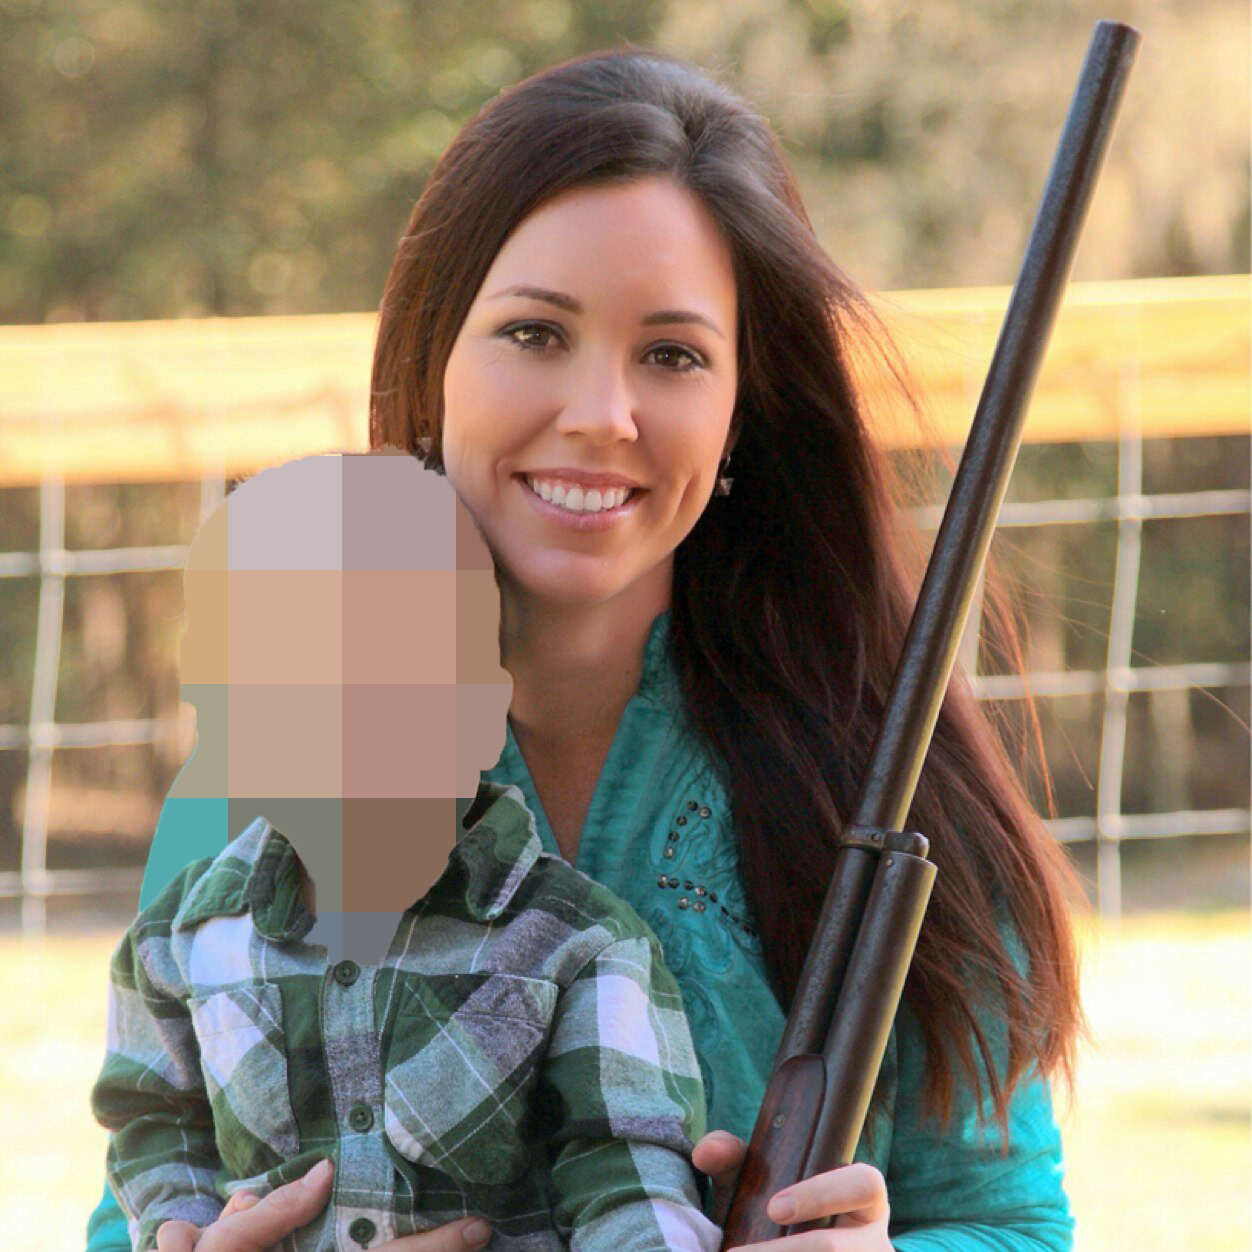 gilt2 Pro Gun Poster Girl Got Shot By Her 4 Year Old Son